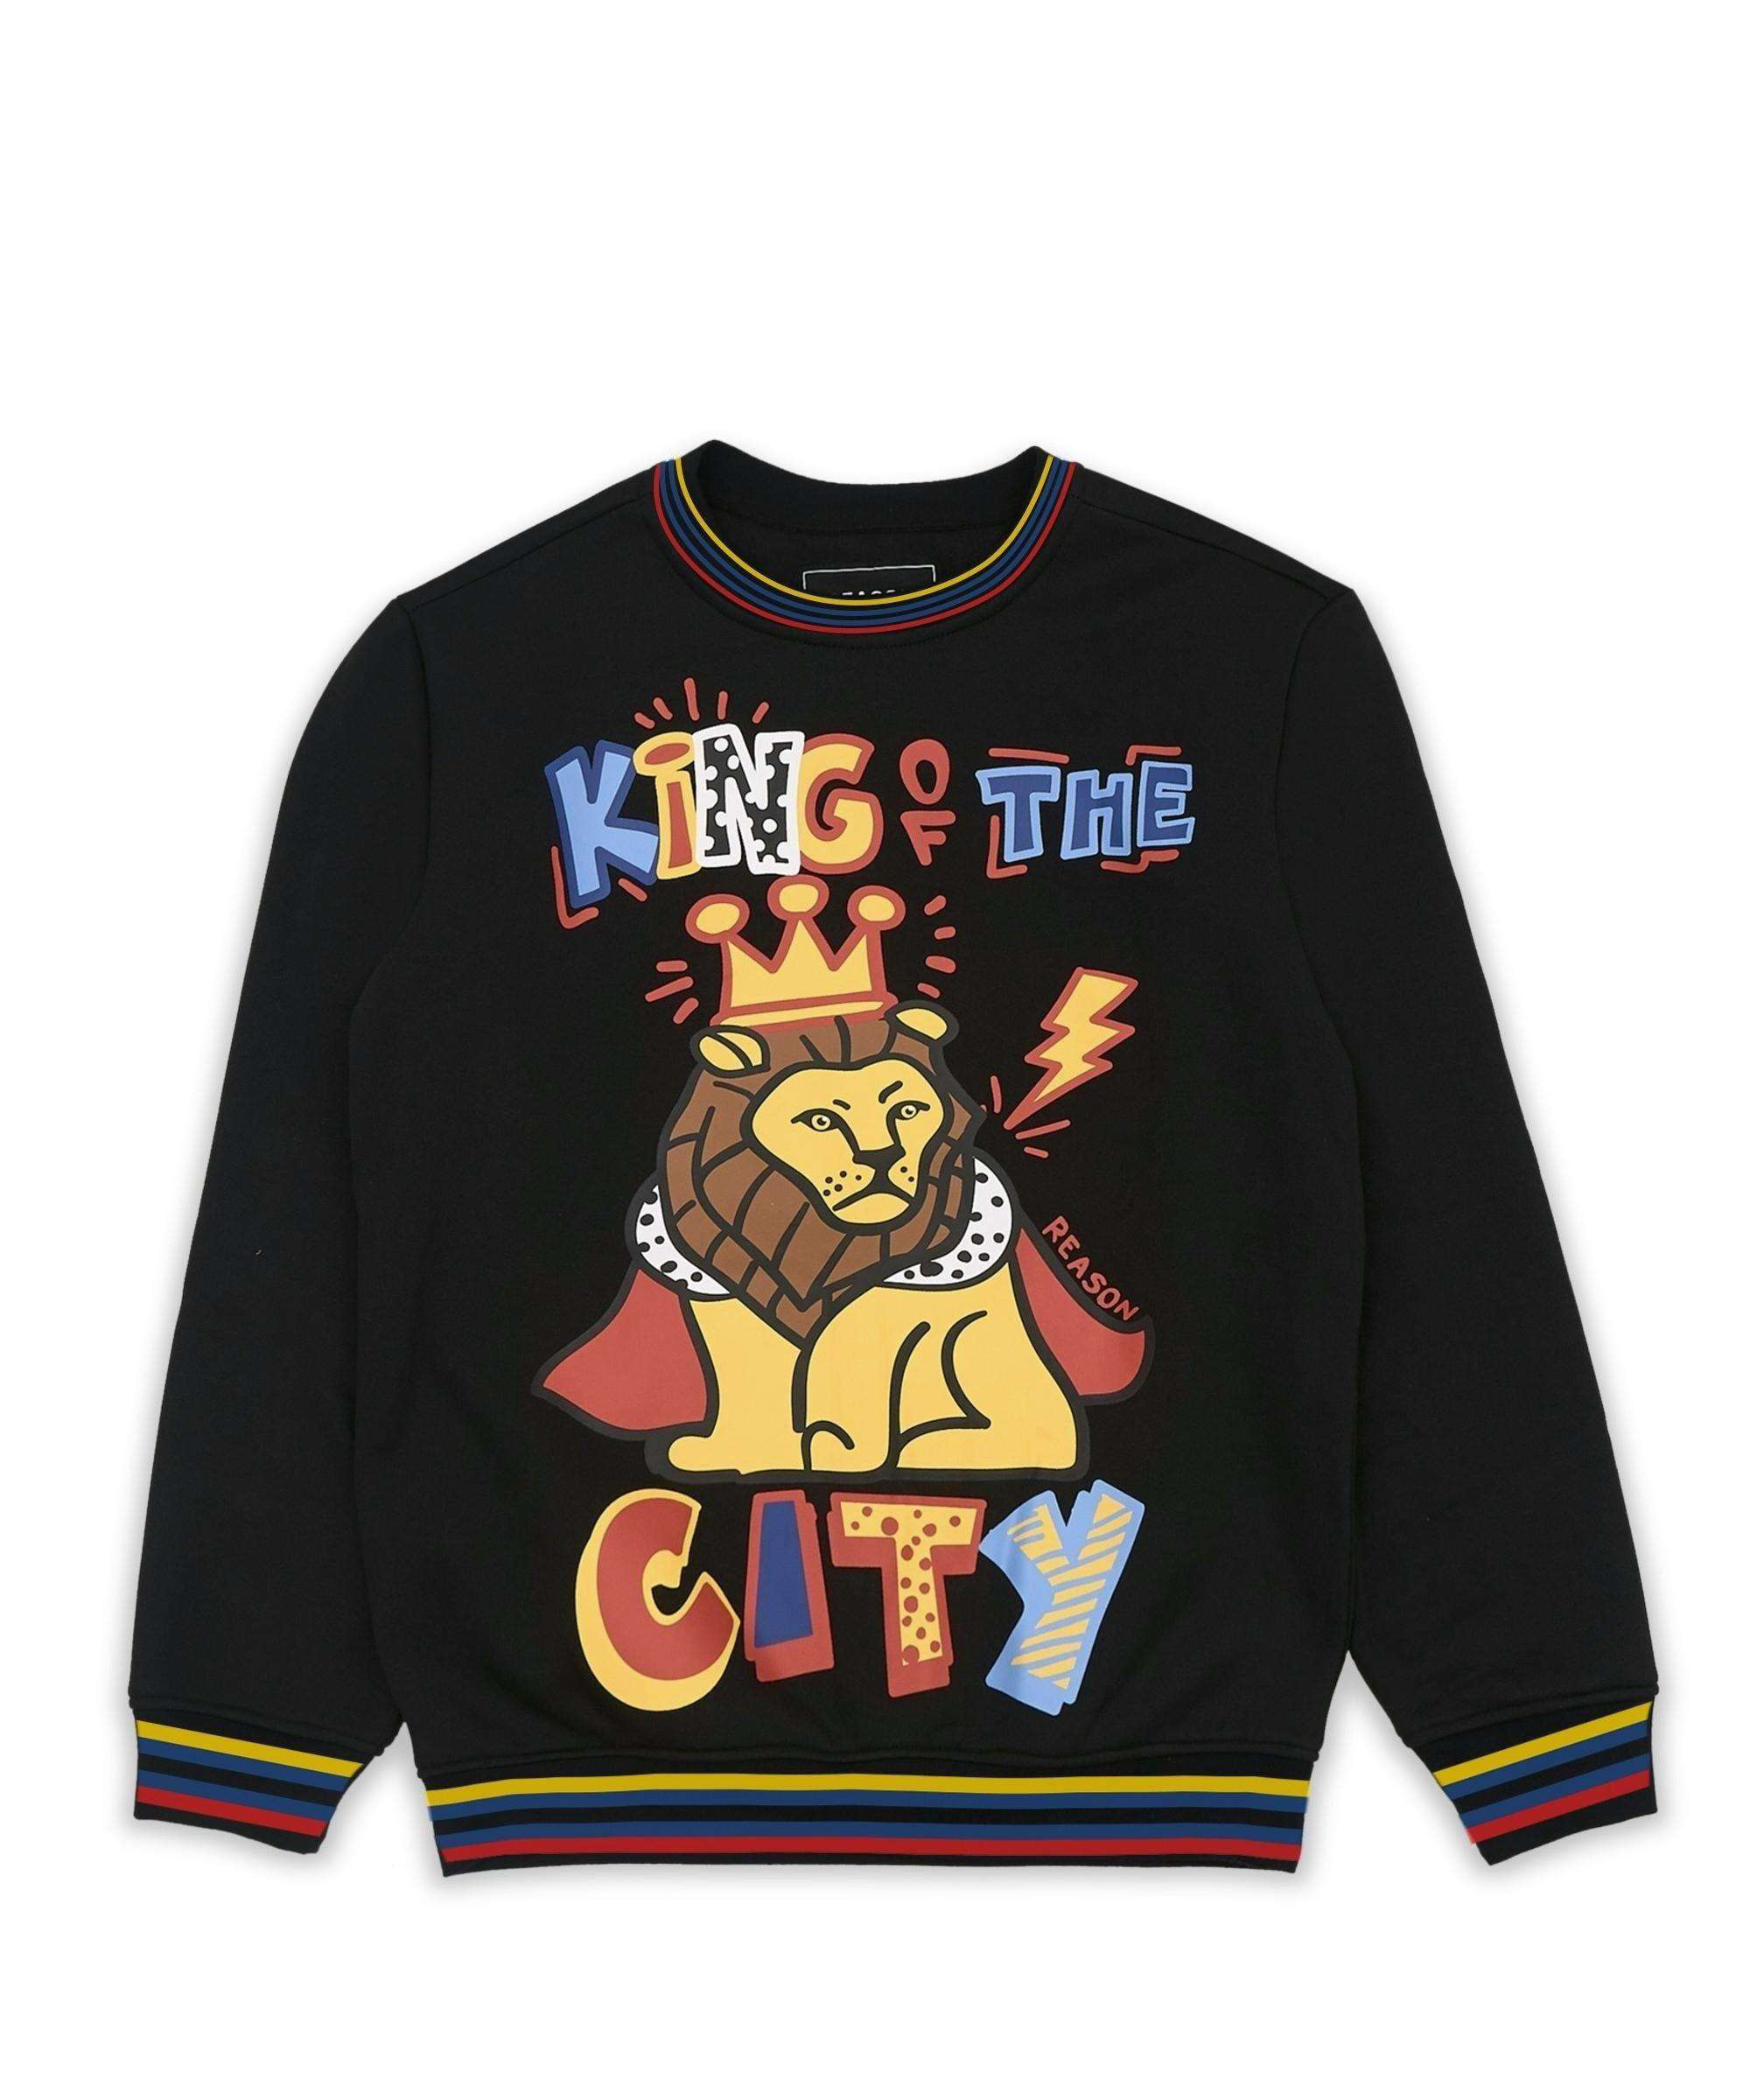 KING OF THE CITY CREWNECK Reason Clothing